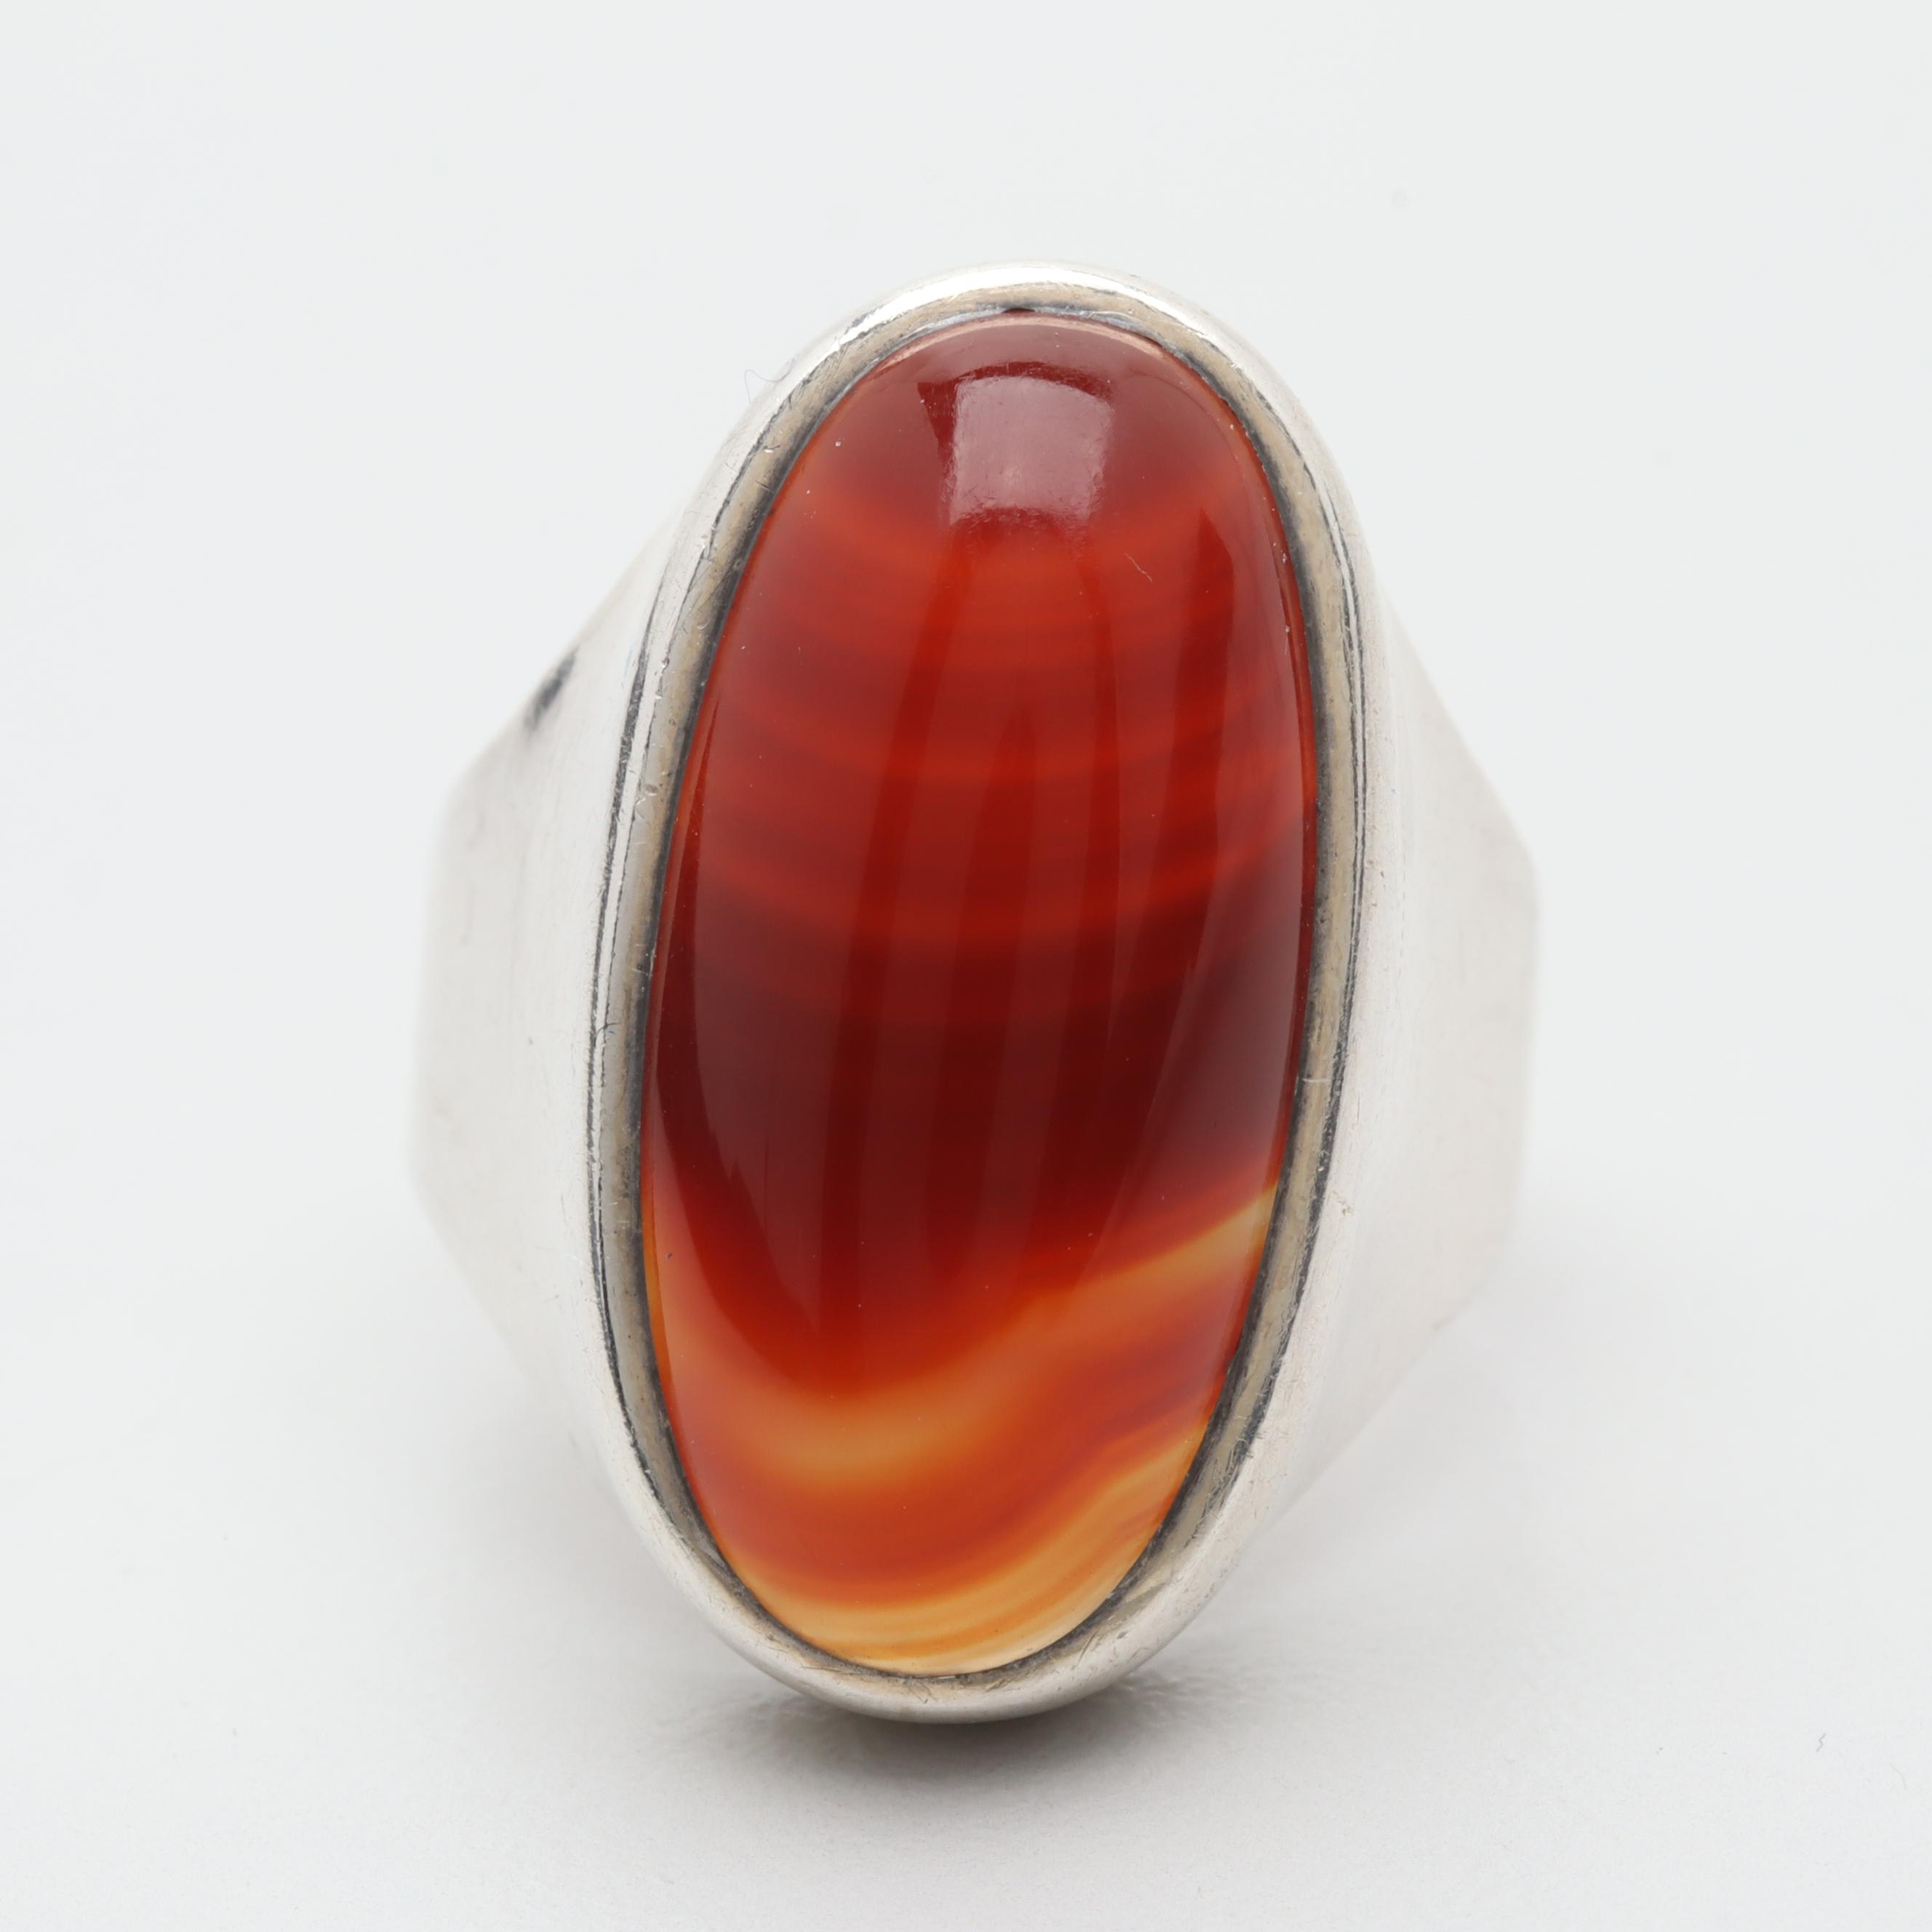 Circa 1976 English Made Sterling Silver Agate Ring